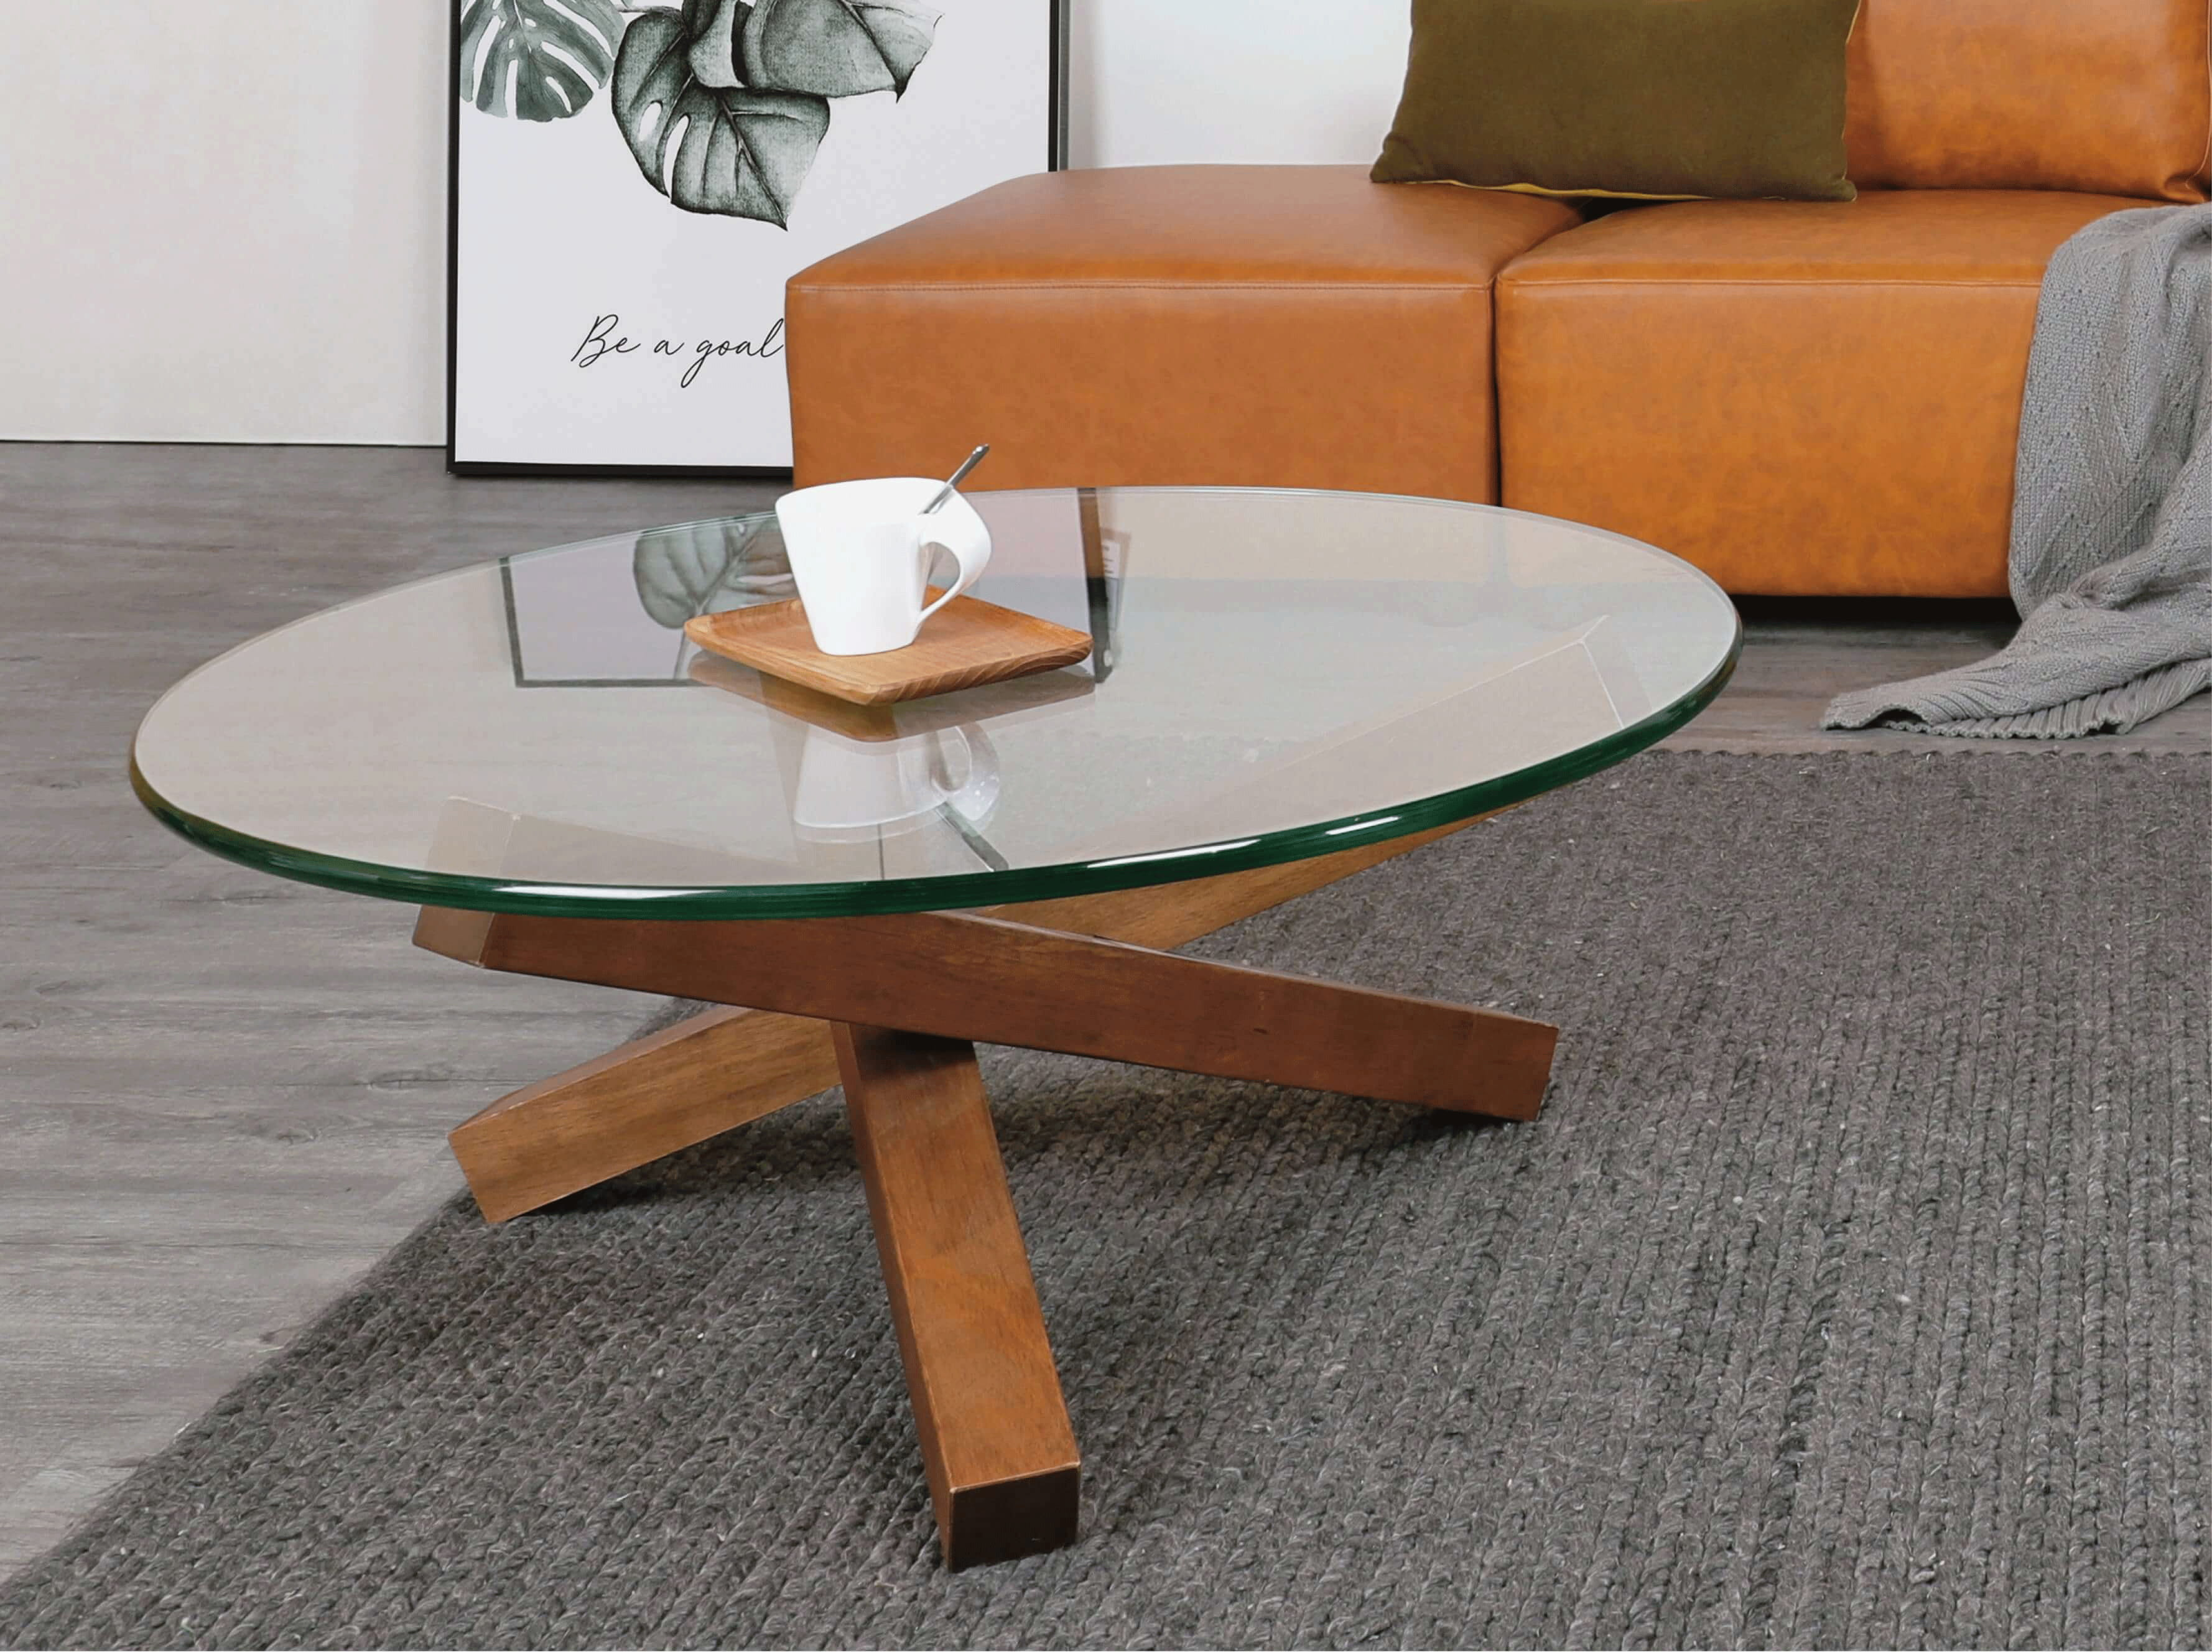 How To Select The Right Coffee Table For Your Living Space Comfort Furniture Blog [ 2656 x 3556 Pixel ]